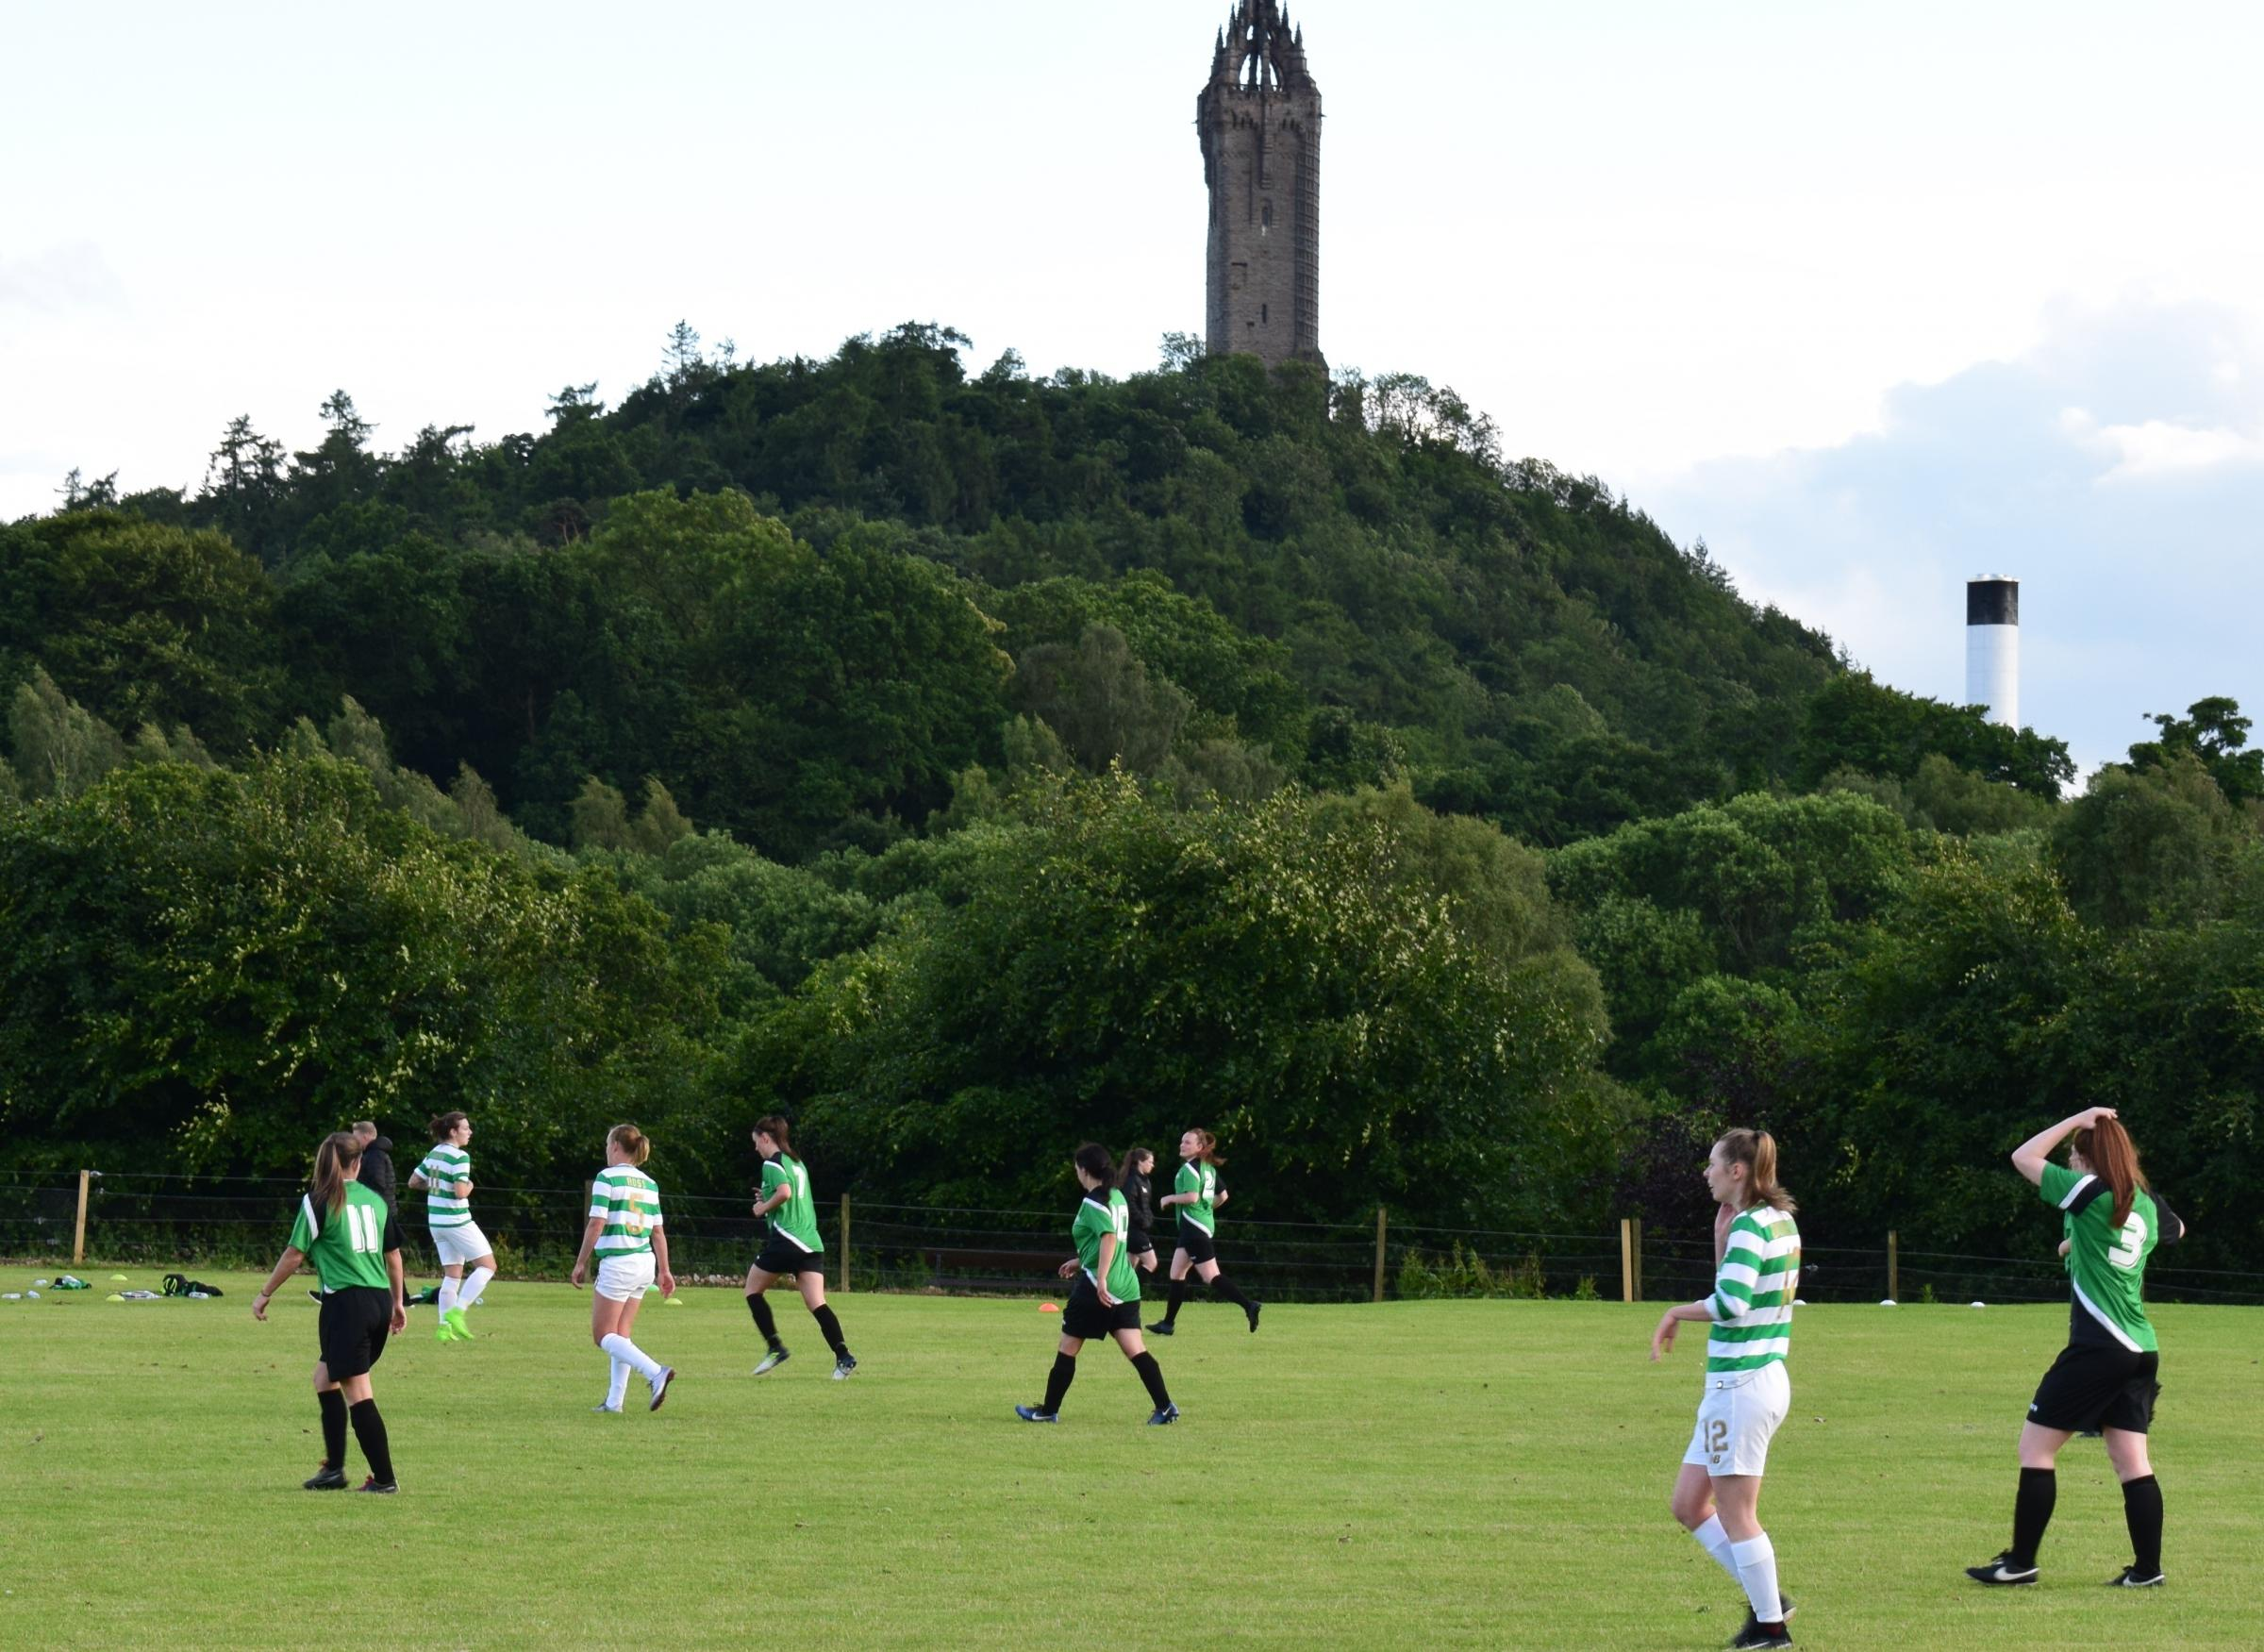 LATE RALLY: The Celtic ladies team grabbed the win with three late goals. Picture by Alexander McLeman